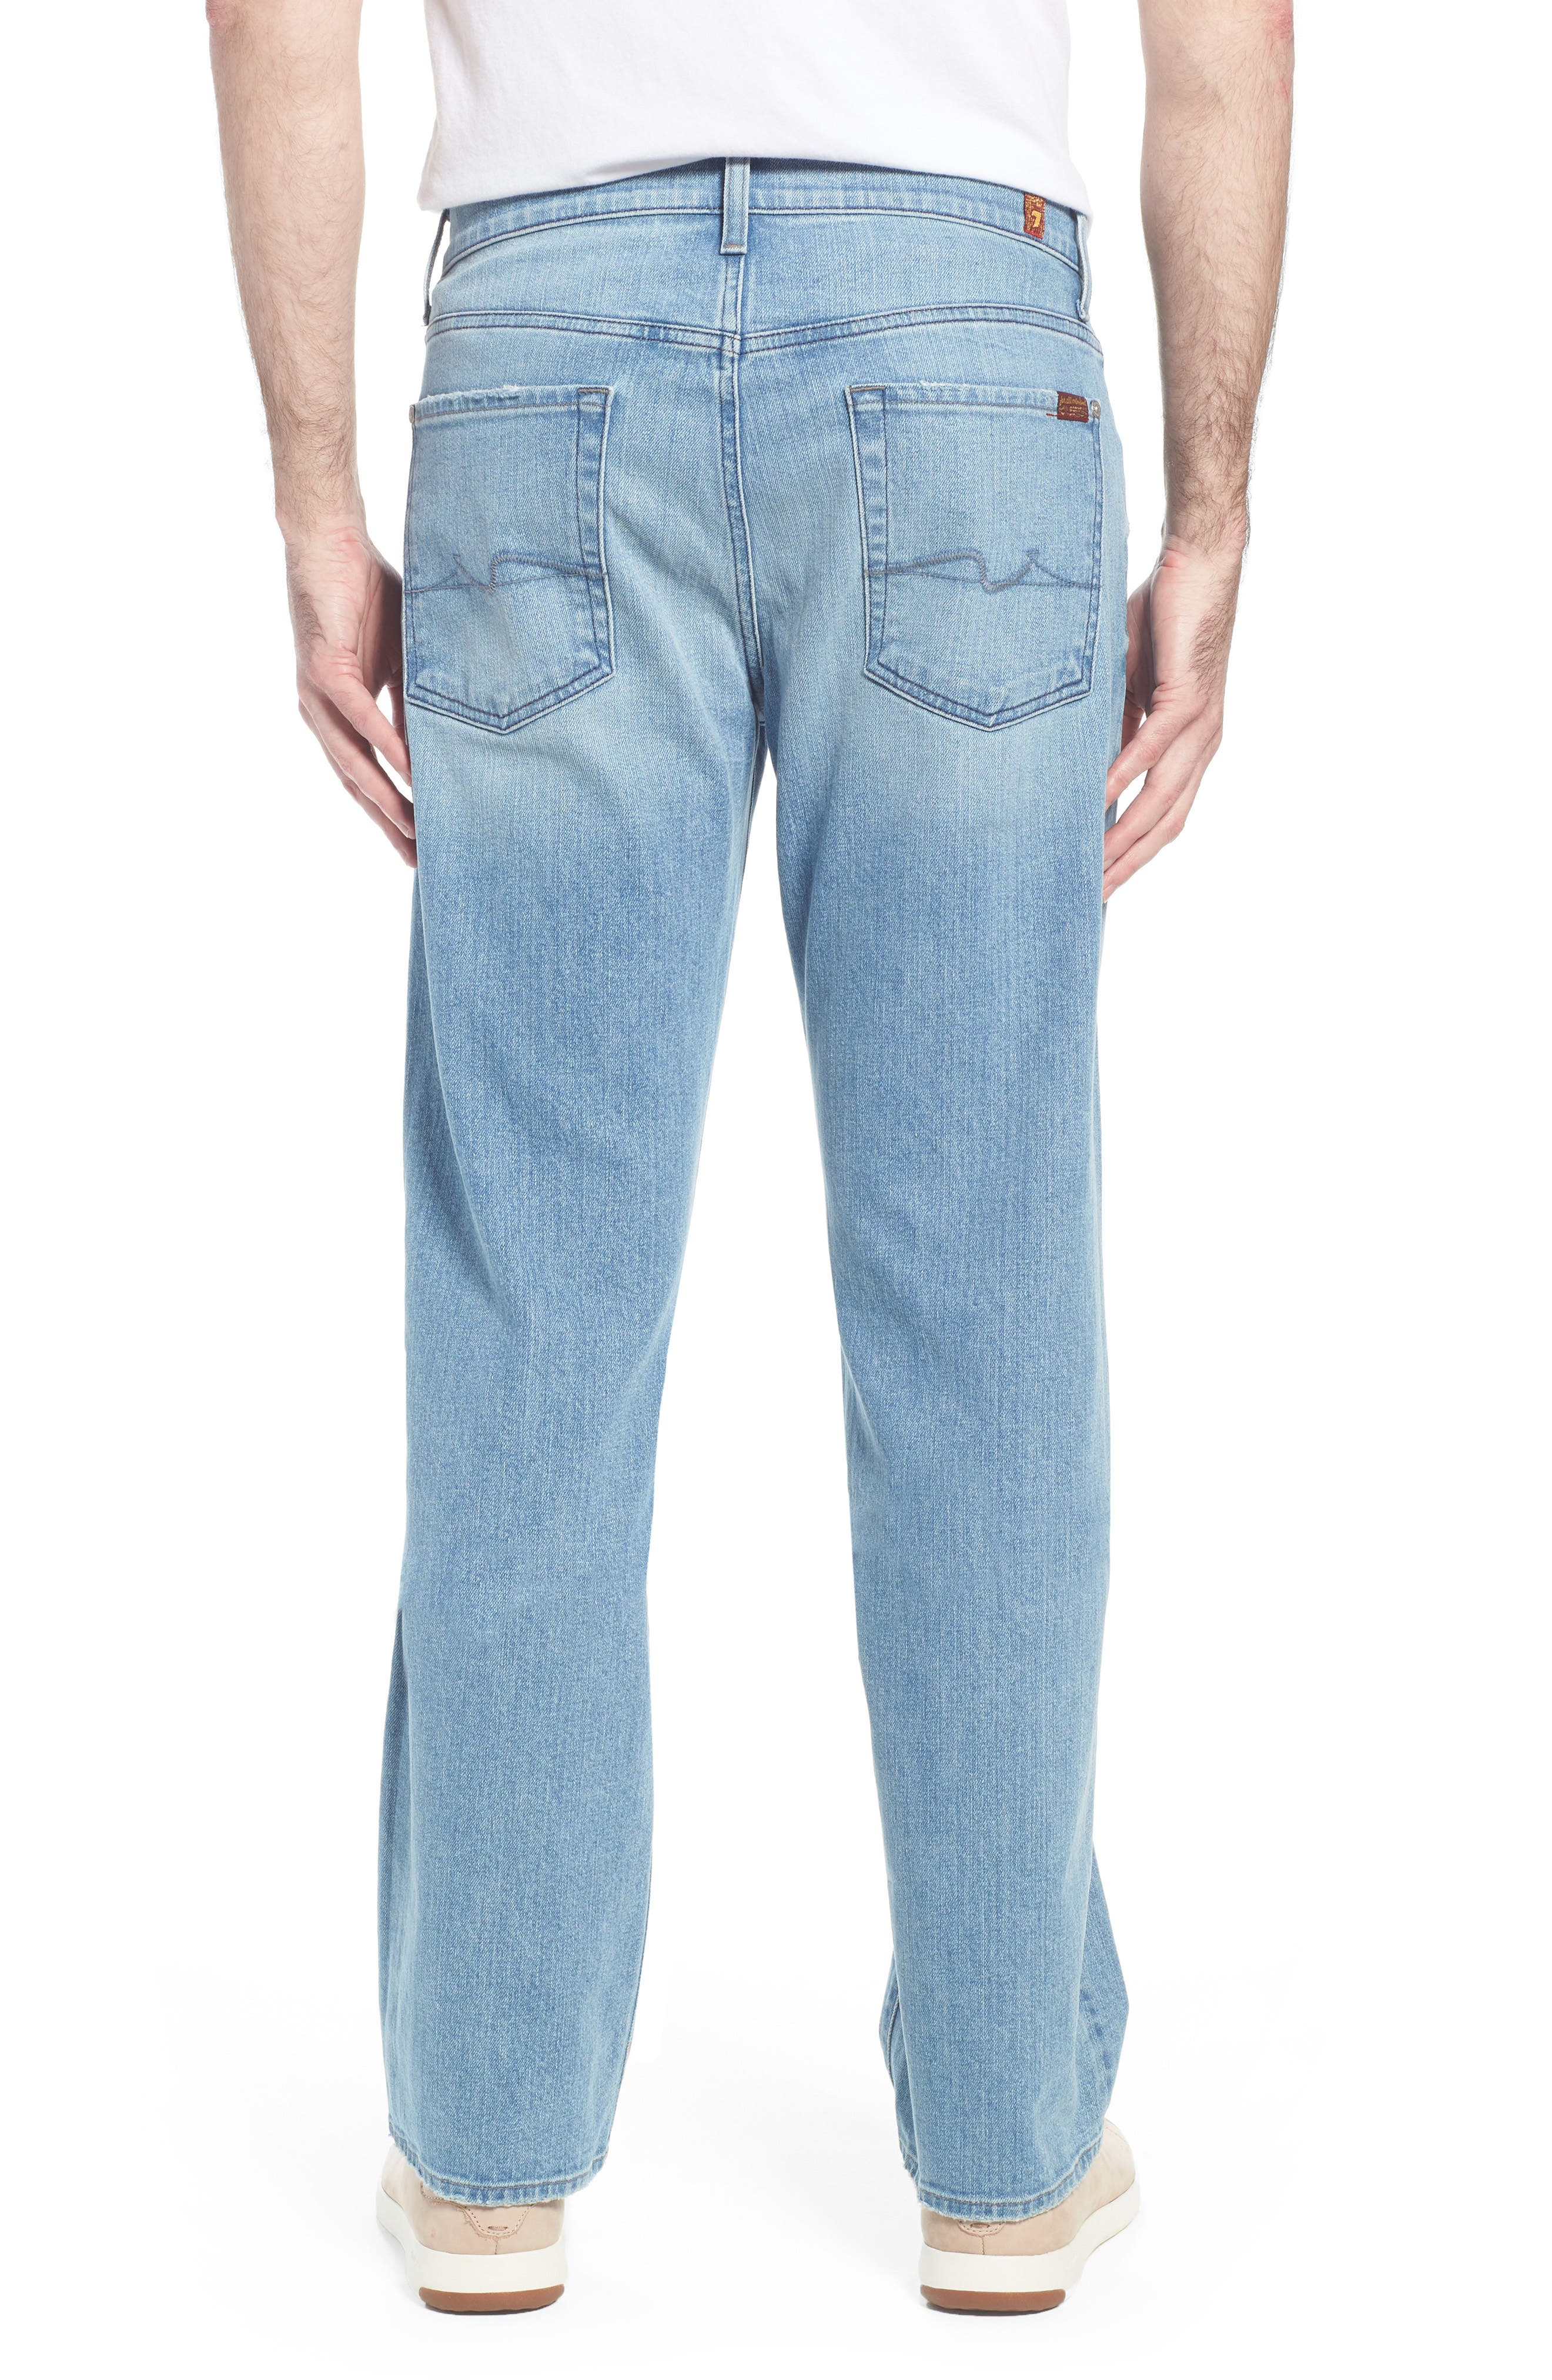 Austyn Relaxed Fit Jeans,                             Alternate thumbnail 2, color,                             Omega